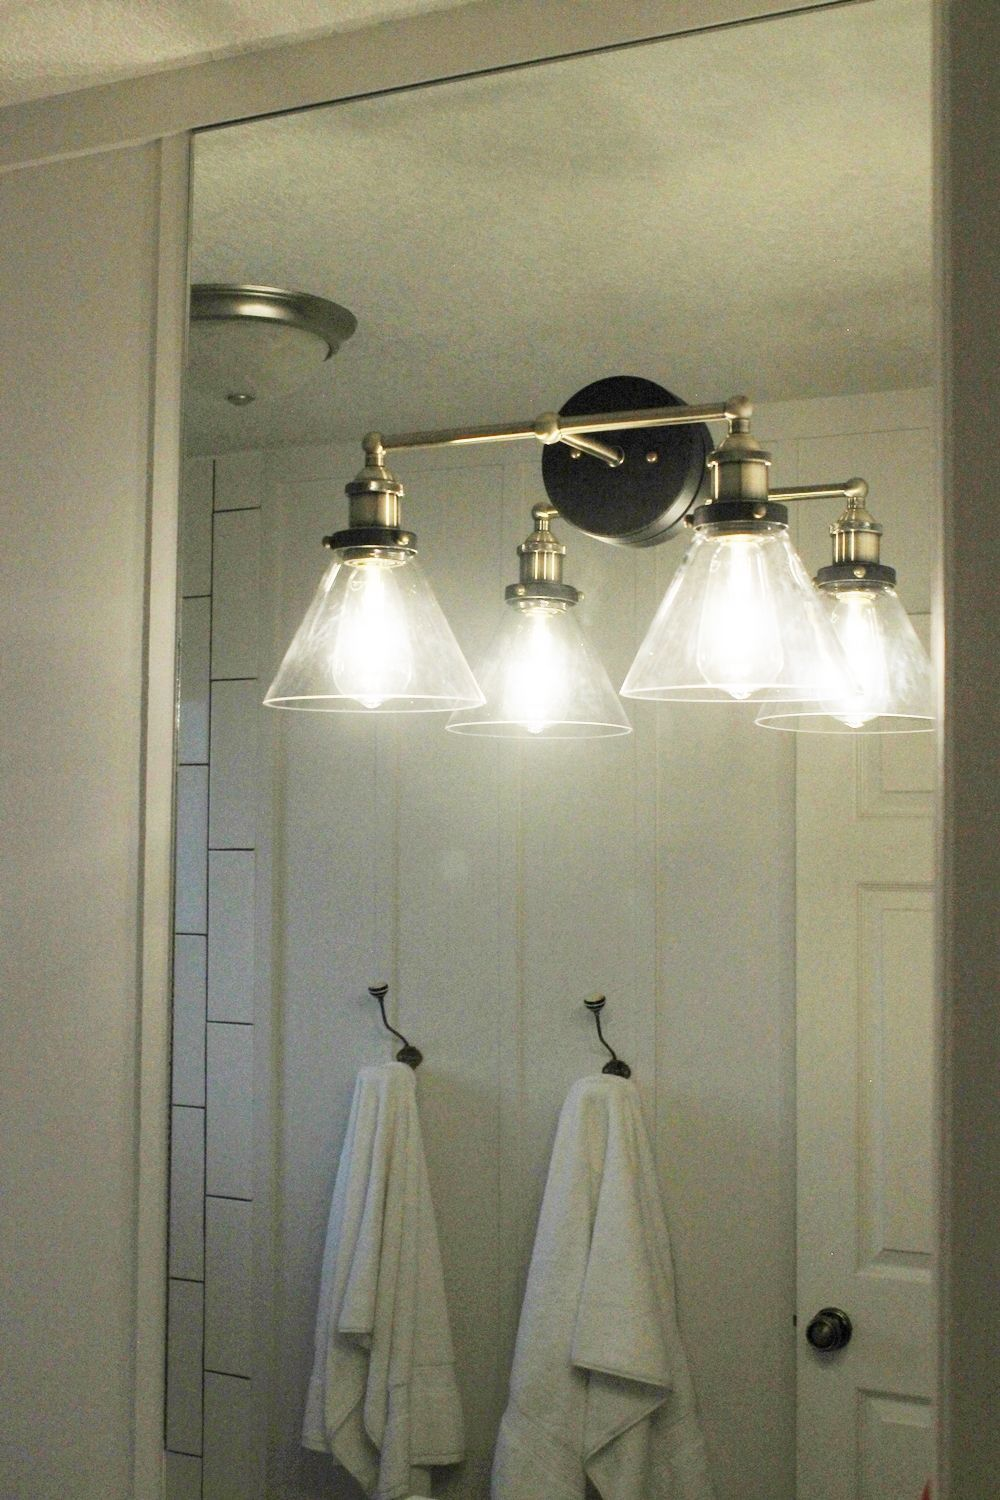 Add Lighting Fixture On Mirror